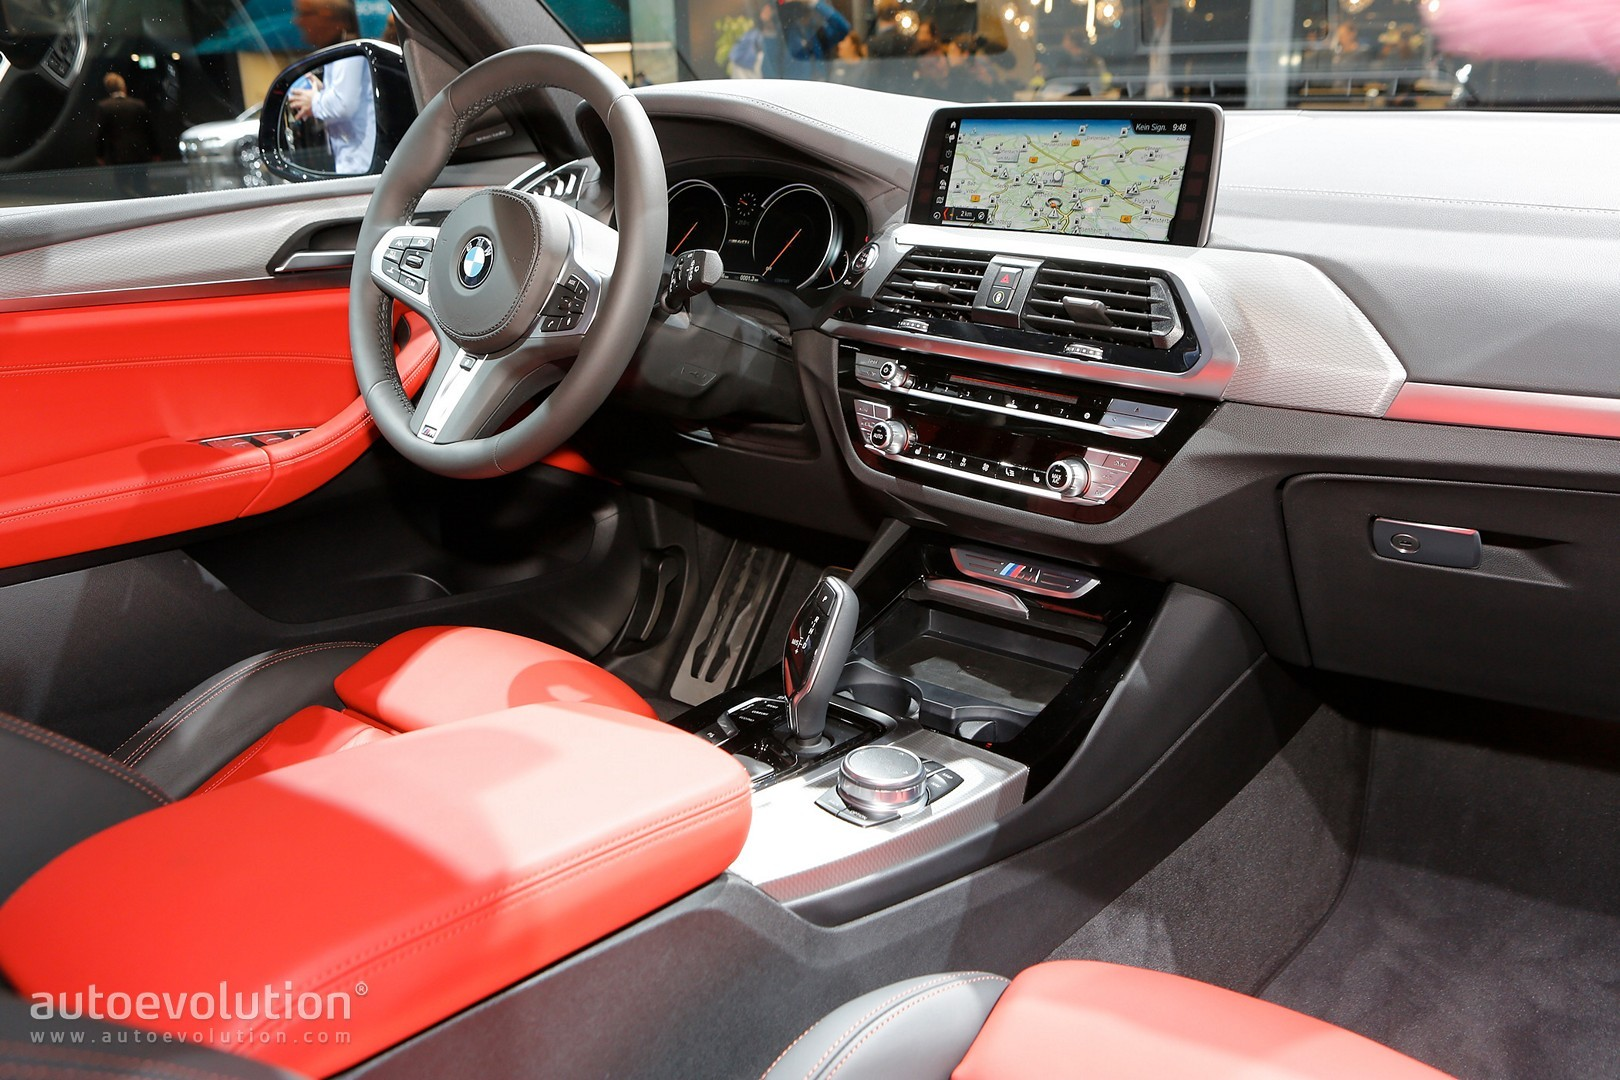 2018 Bmw X3 M40i Acceleration Test Goes To 260 Km H On